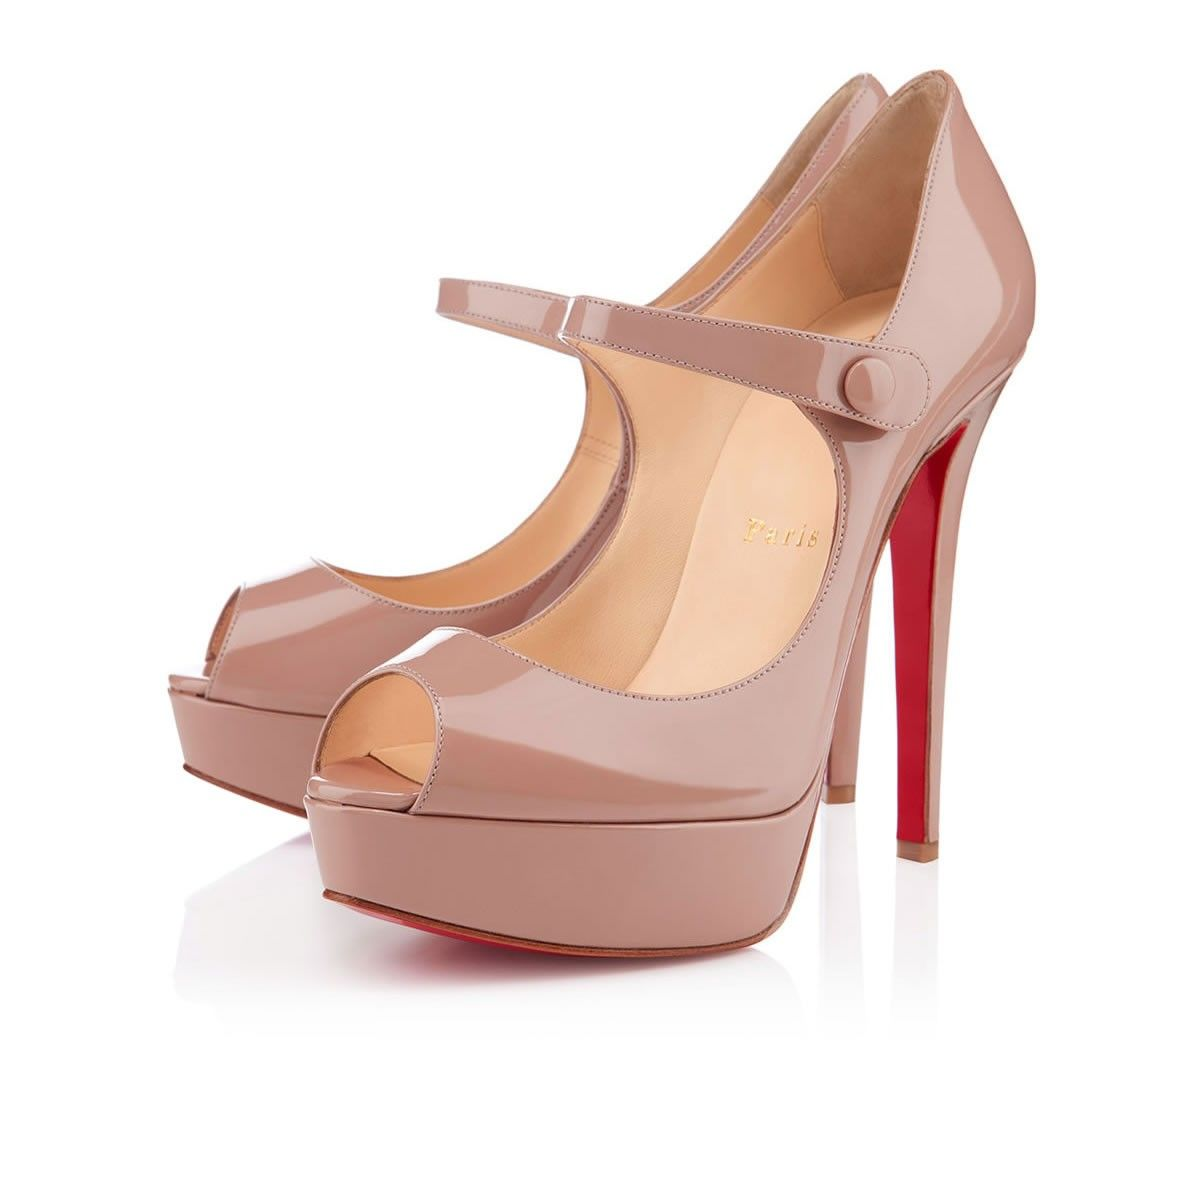 BANA PATENT 140 mm, Patent Leather, nude, platforms, women's shoes.